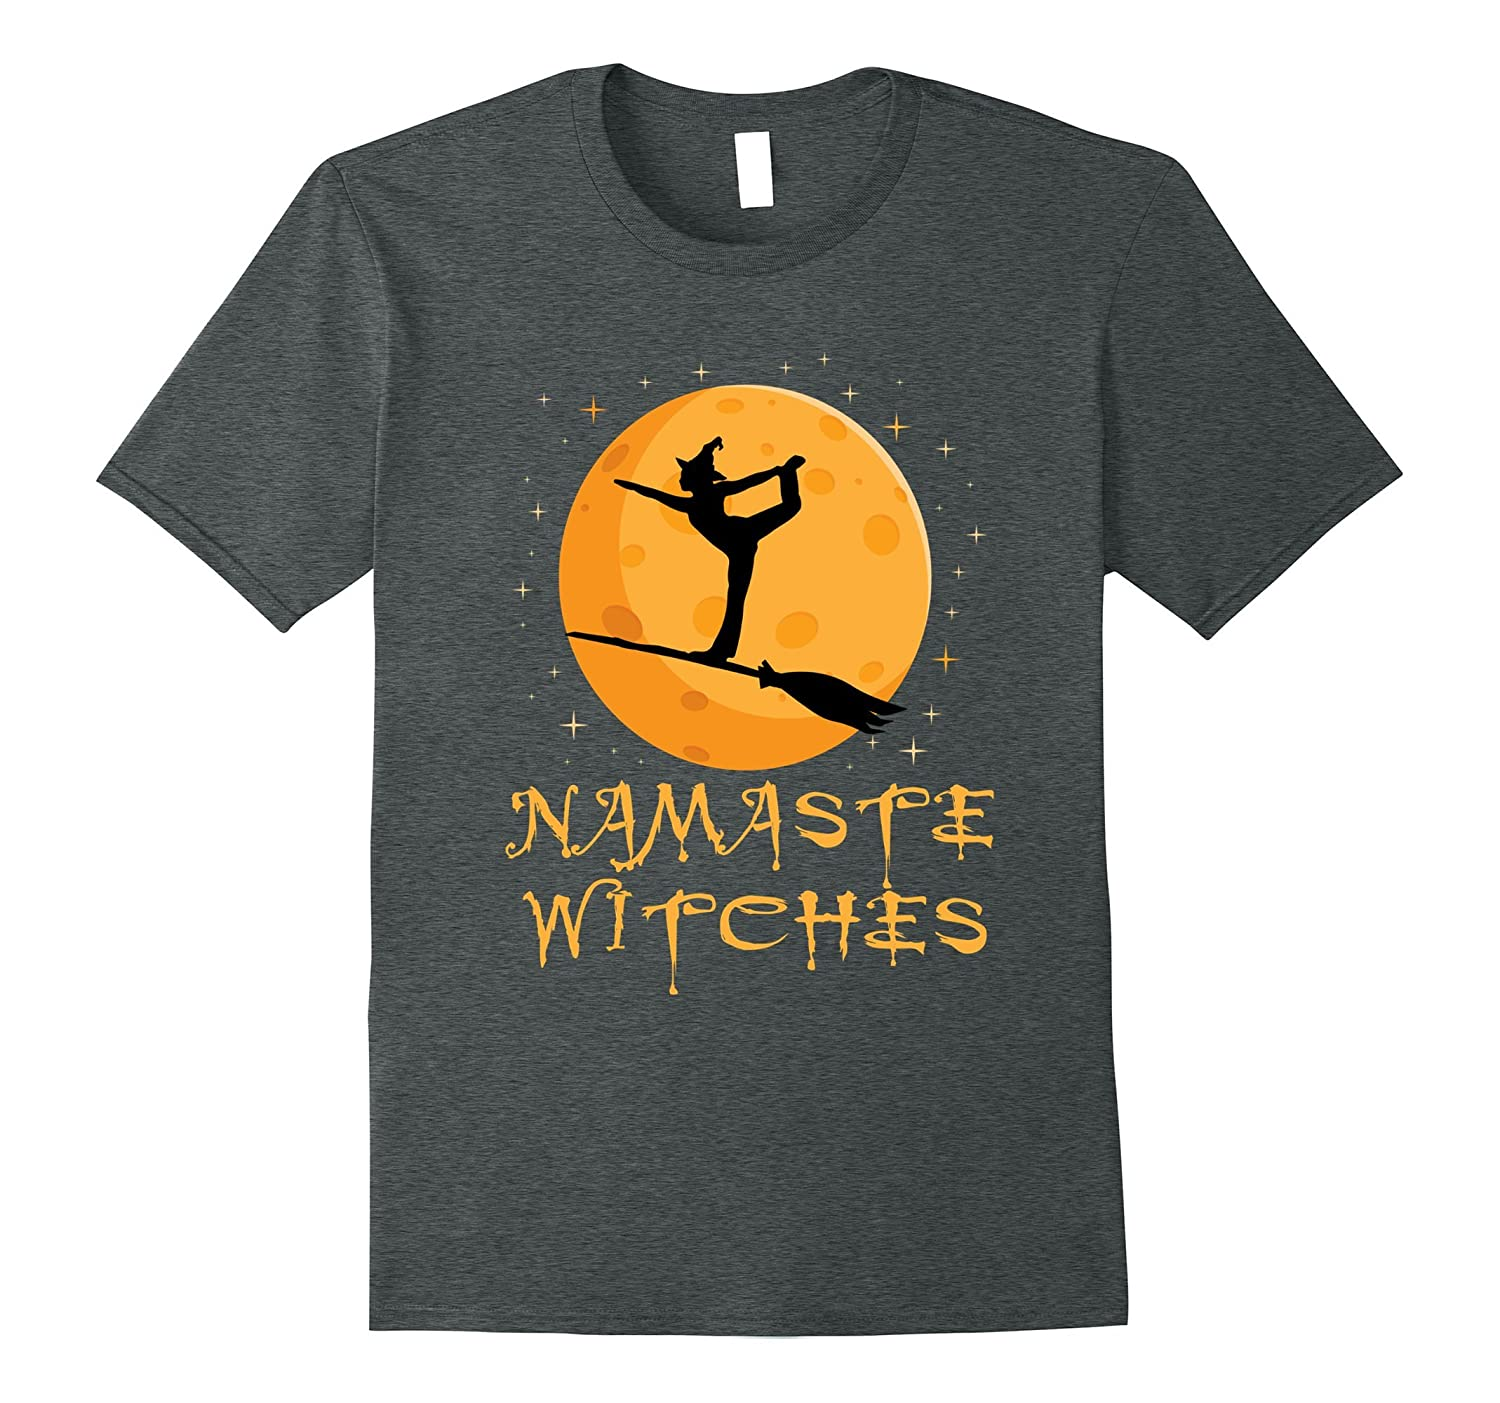 'Namaste Witches' Cute Witch Halloween Shirt